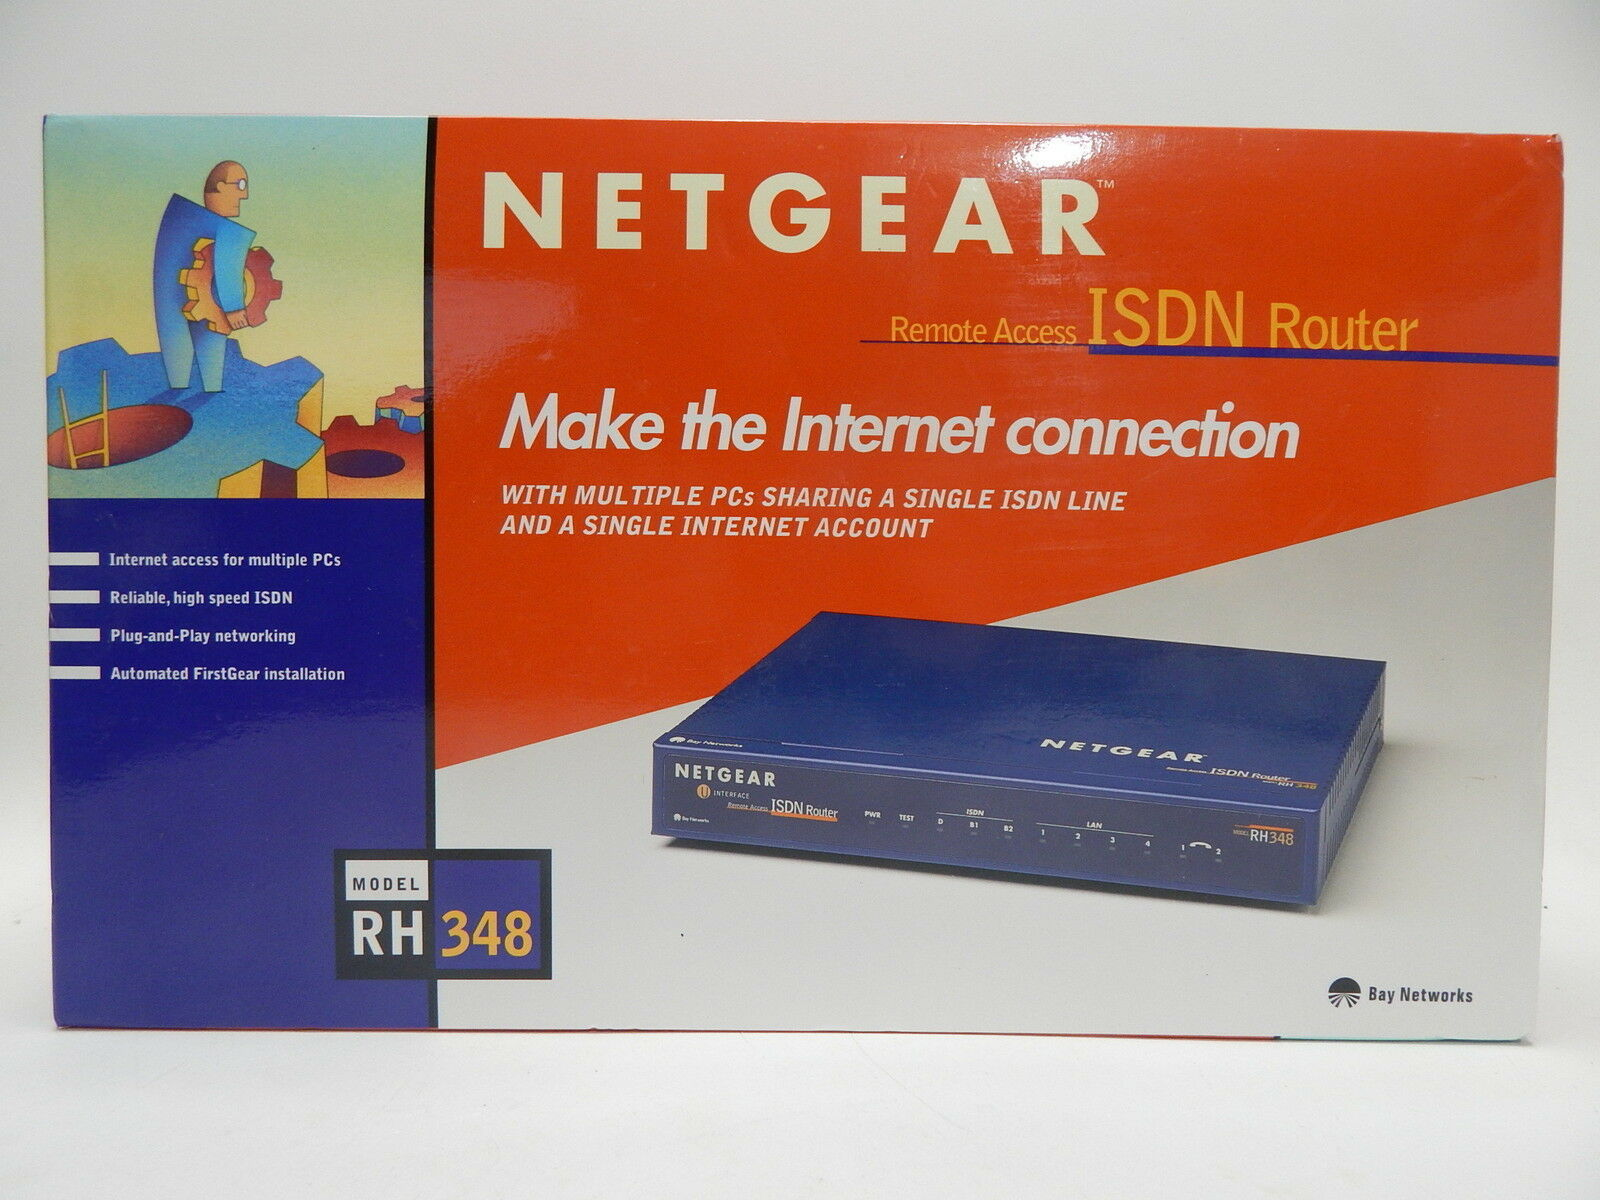 Netgear Remote Access Isdn Router New Sealed and 50 similar